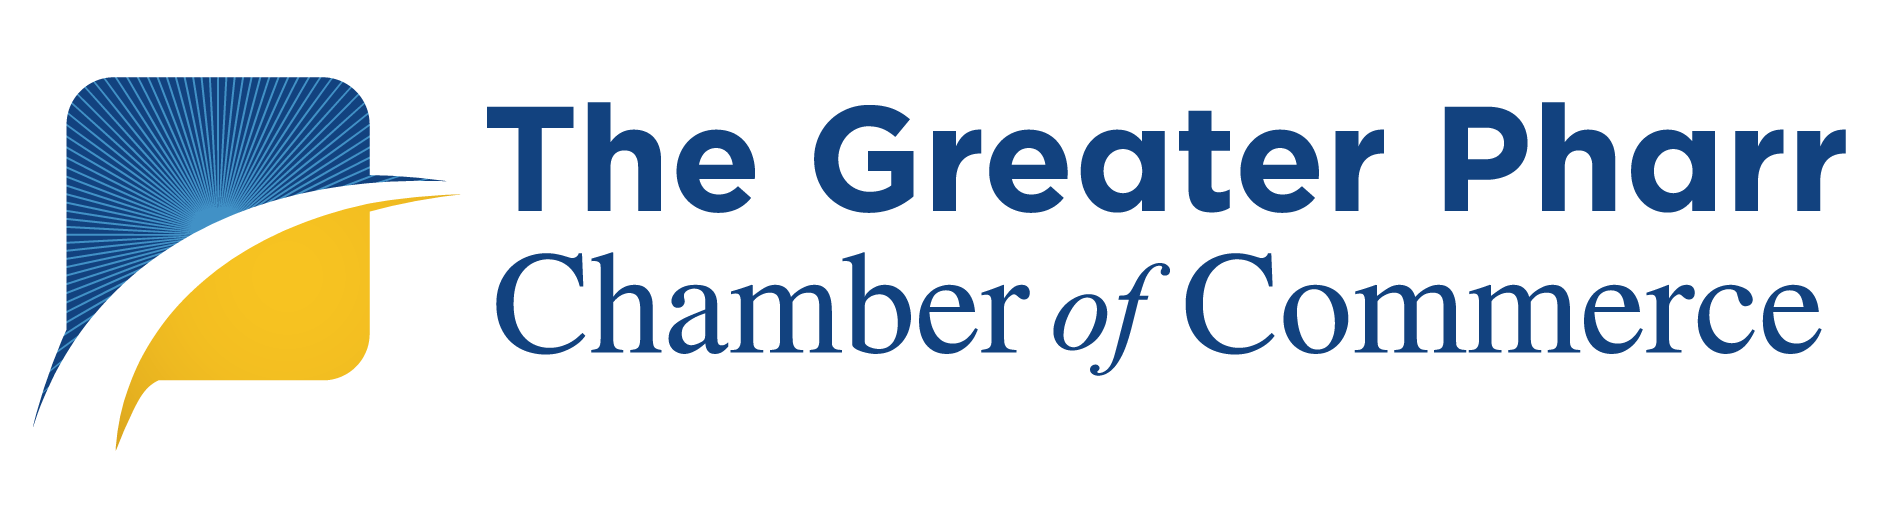 Greater Pharr Chamber